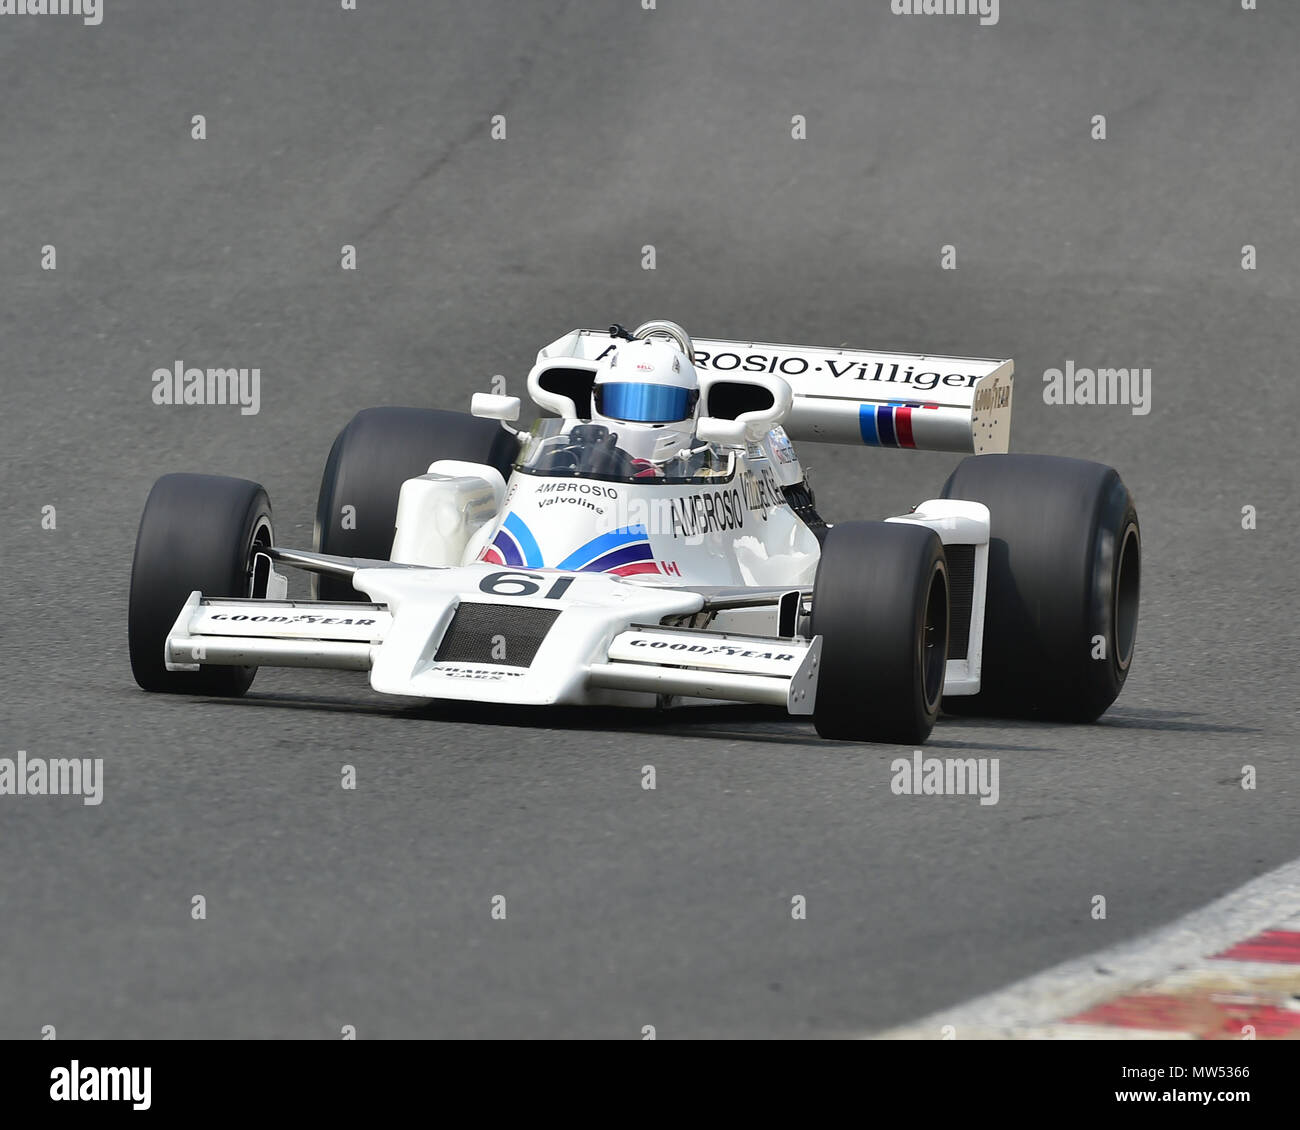 Jason Wright, Shadow DN8, FIA Masters Historic Formula One Championship, Masters Historic Festival, Brands Hatch, May 2018. Brands Hatch, classic cars - Stock Image